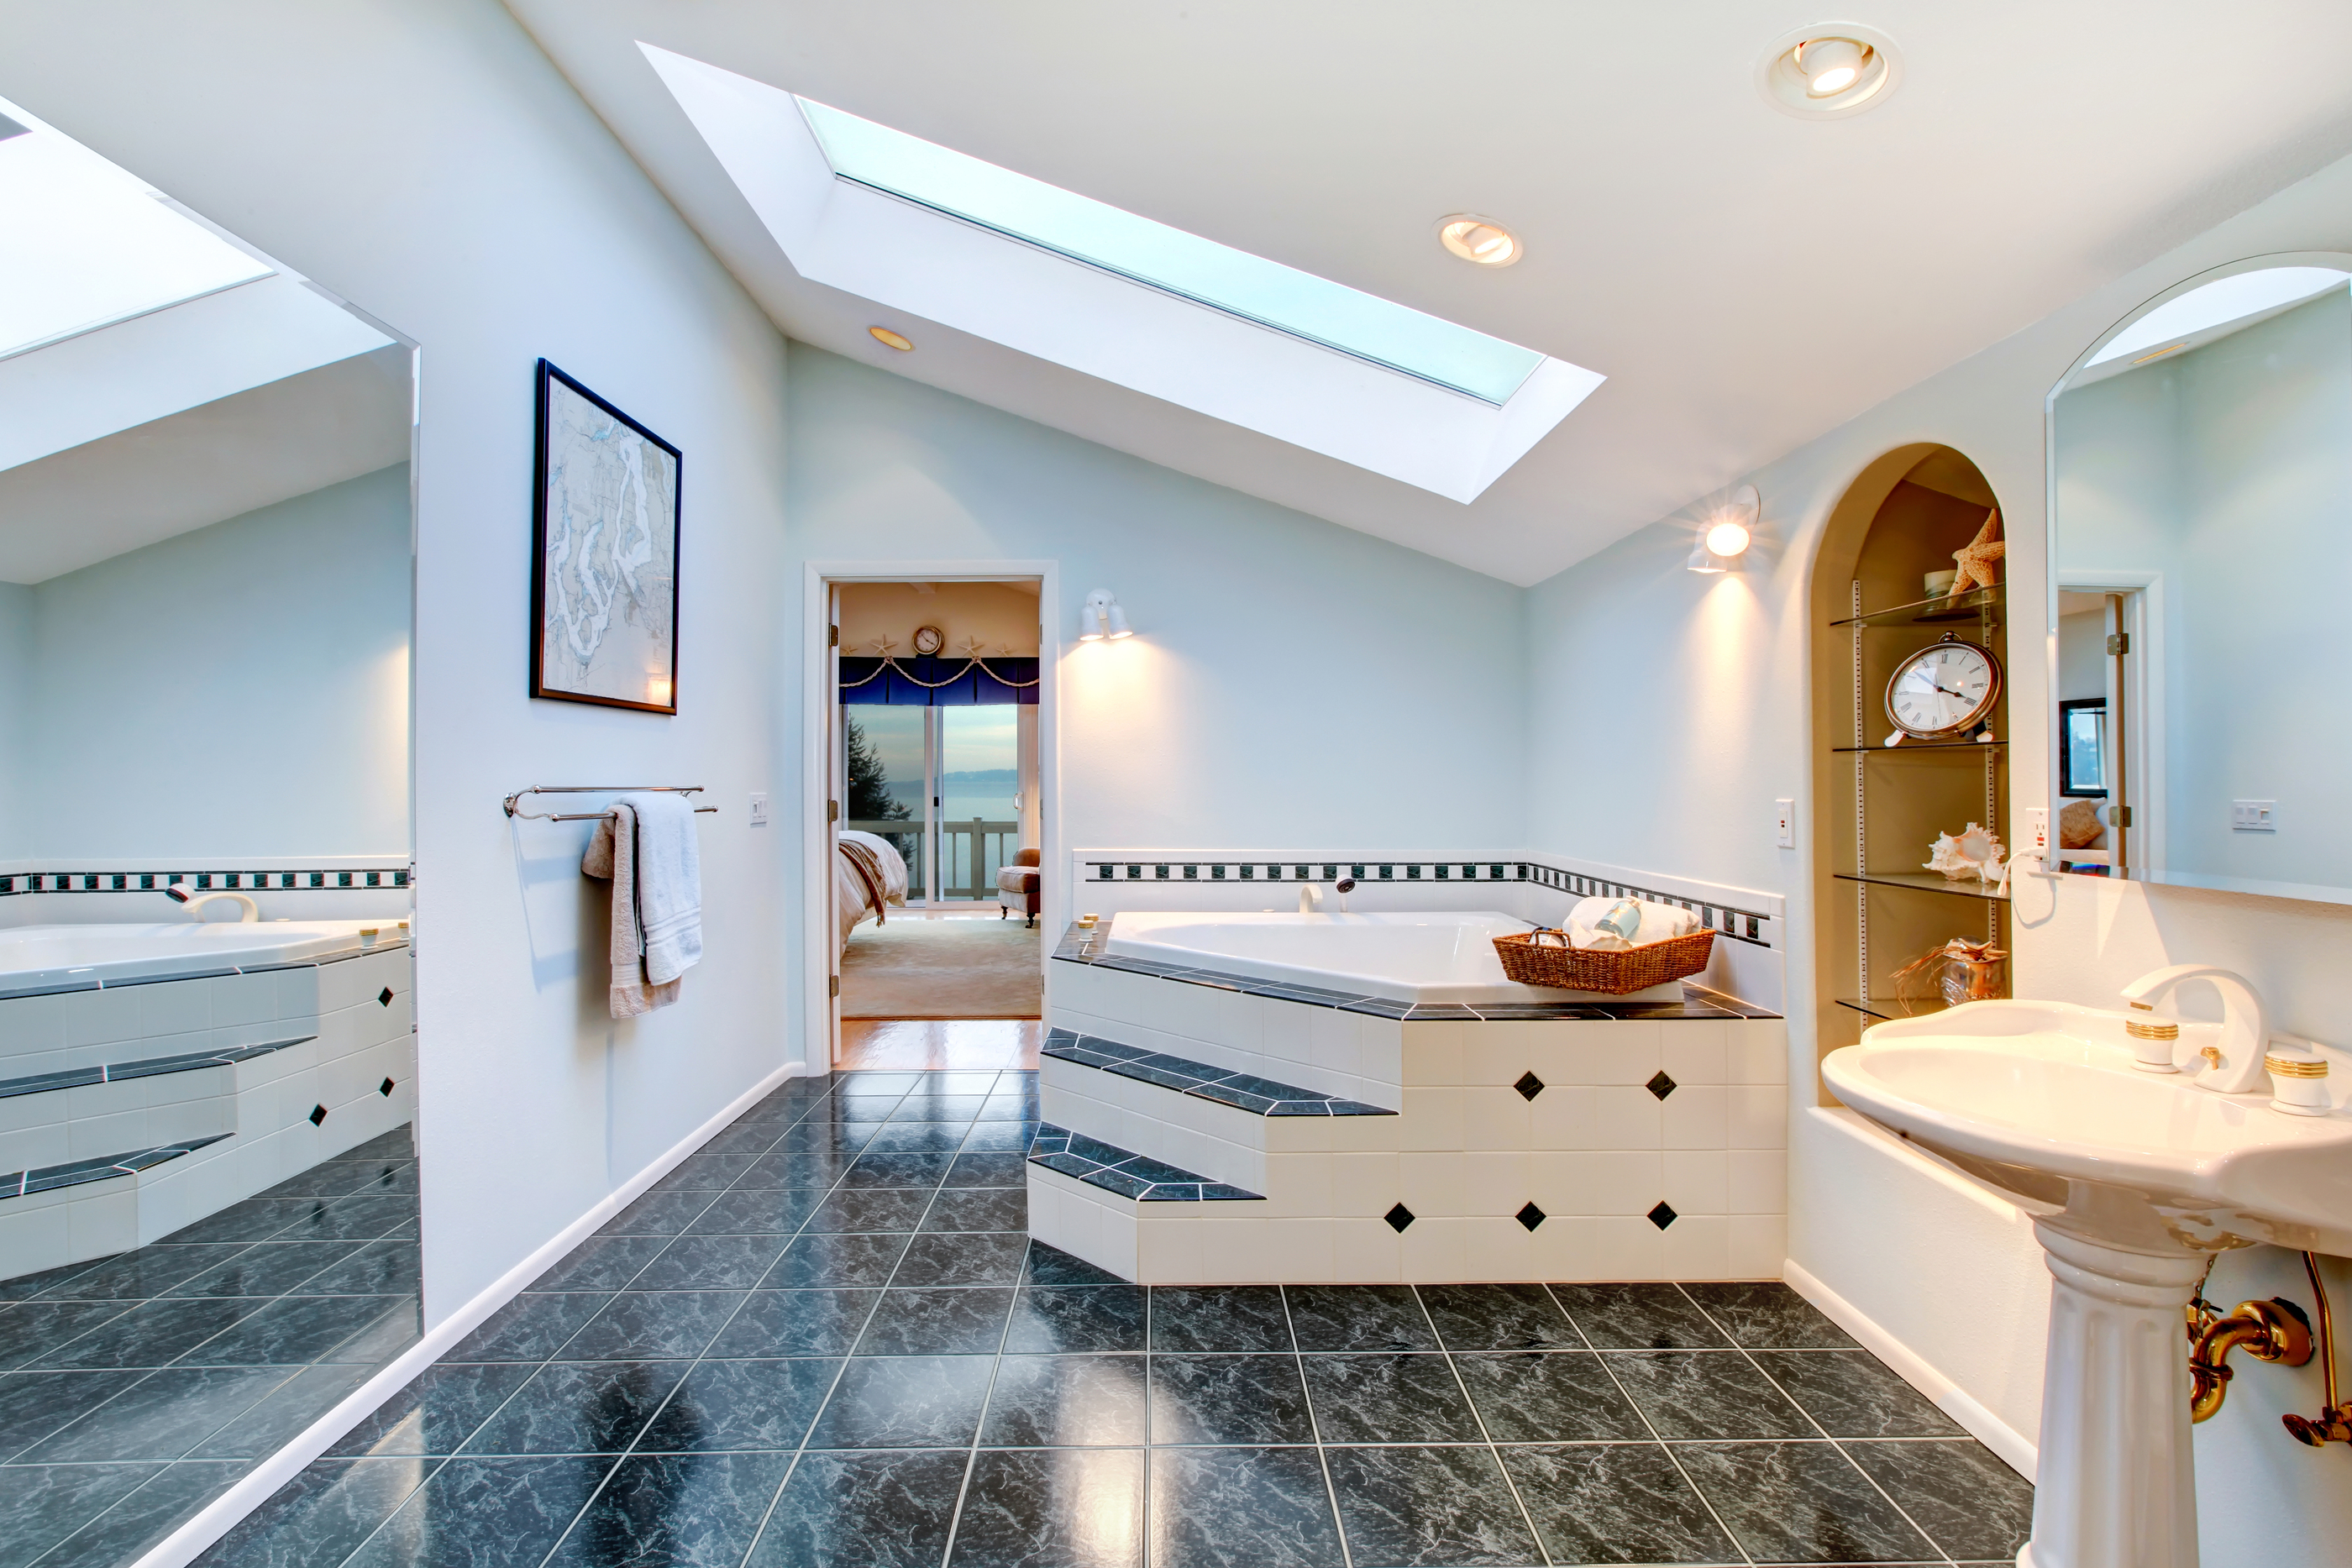 Why So Many People Are Choosing Tile Flooring?